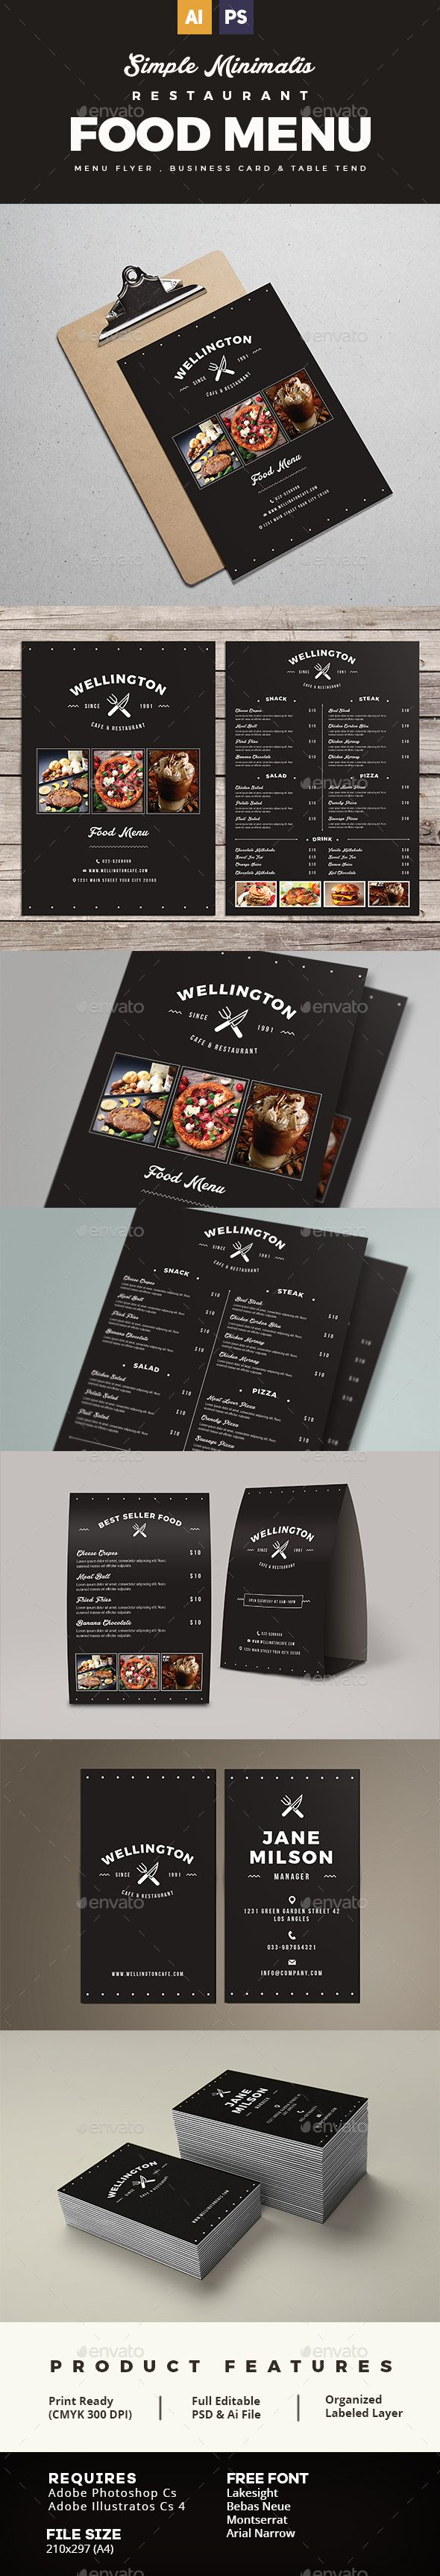 Simple Minimalis Restaurant Food Menu Package - Food Menus Print Templates